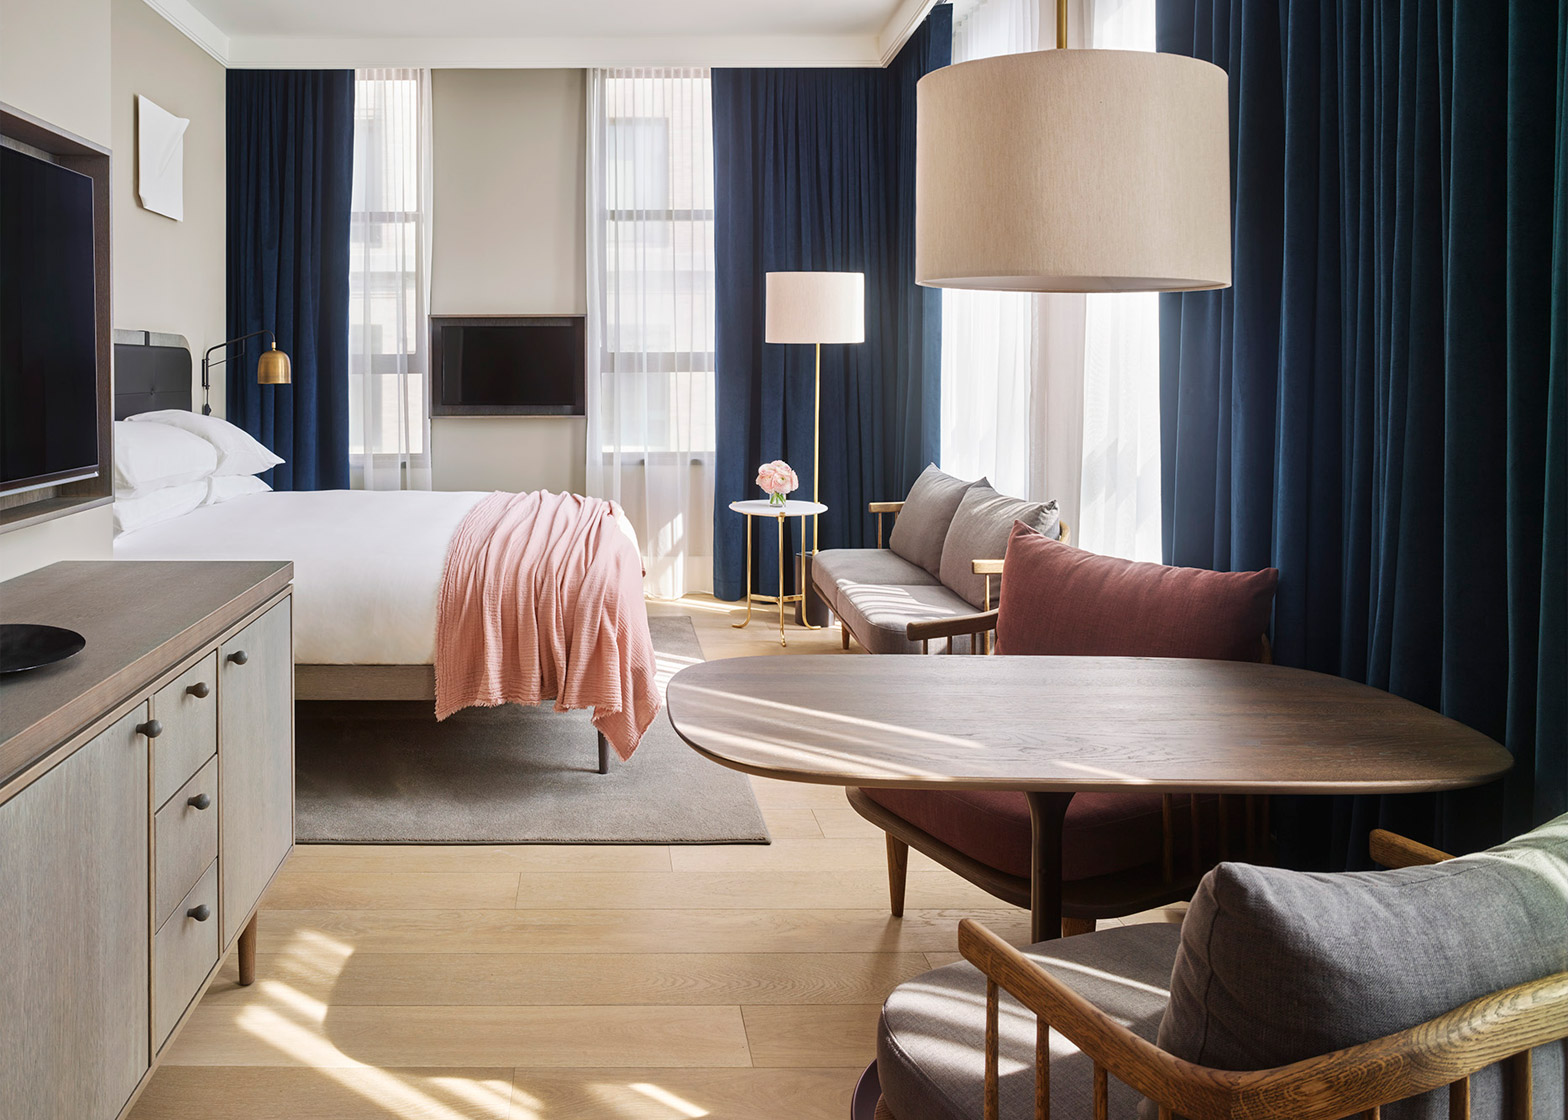 of howard materials copenhagen space natural dezeen by interior usa designers soho designs nyc city new hotel york